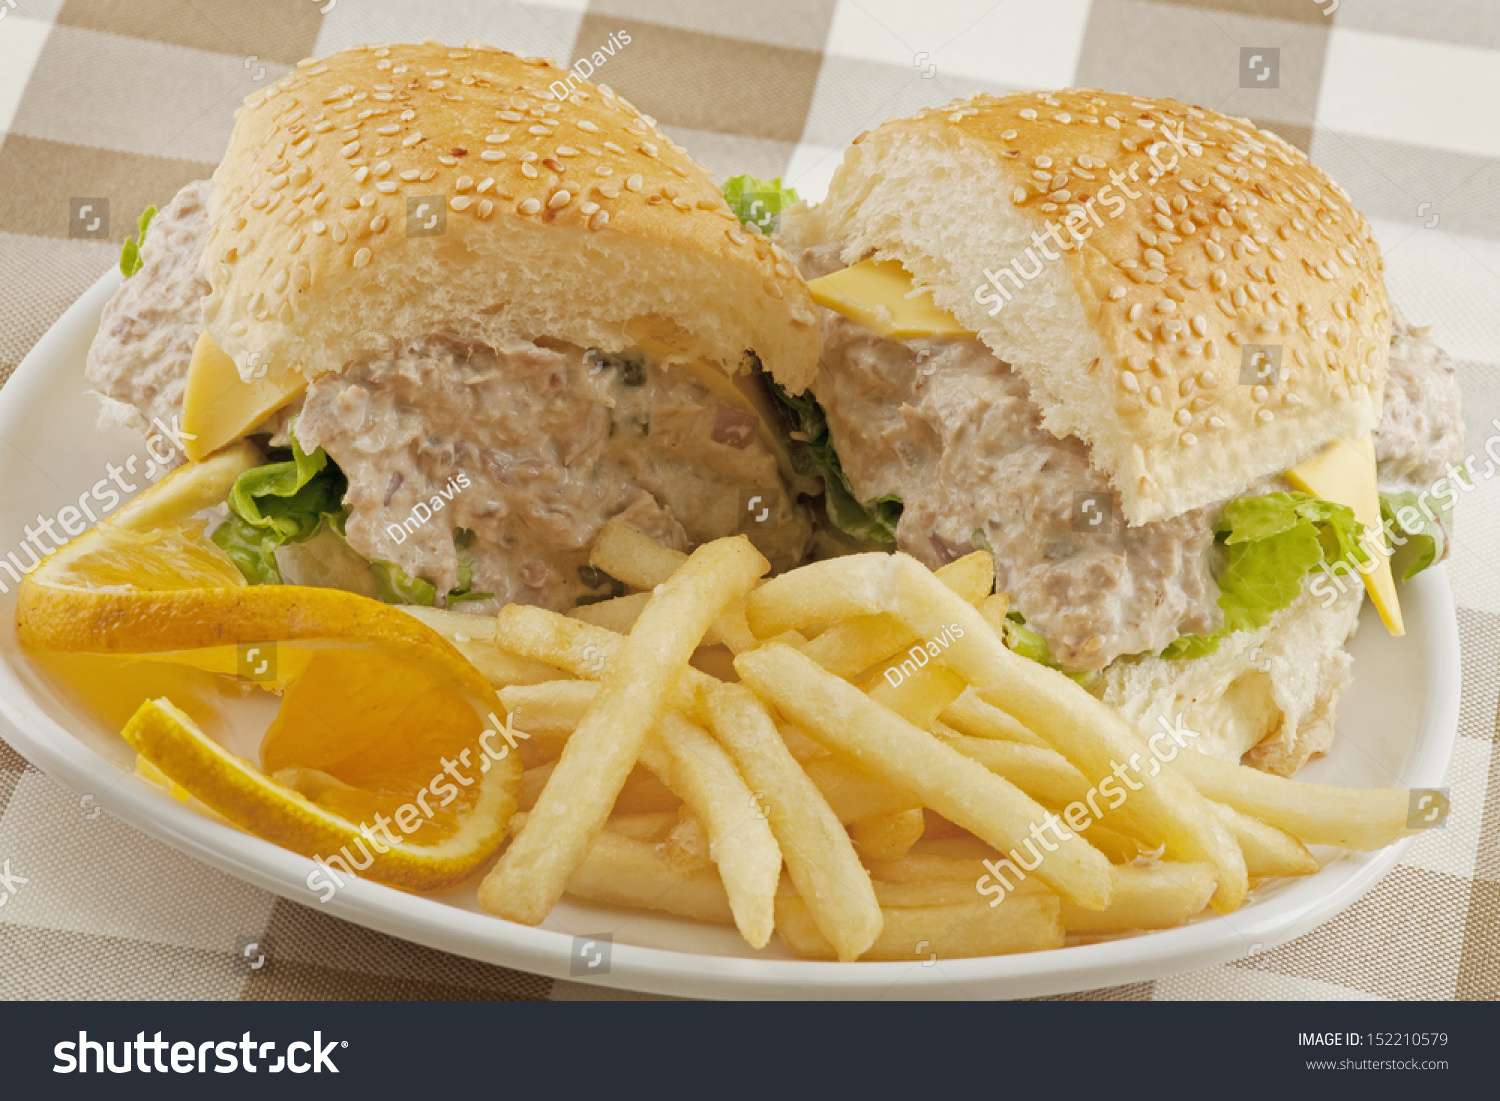 Aninimal Book: A Delicious Tuna Salad Sandwich With French Fries Stock ...